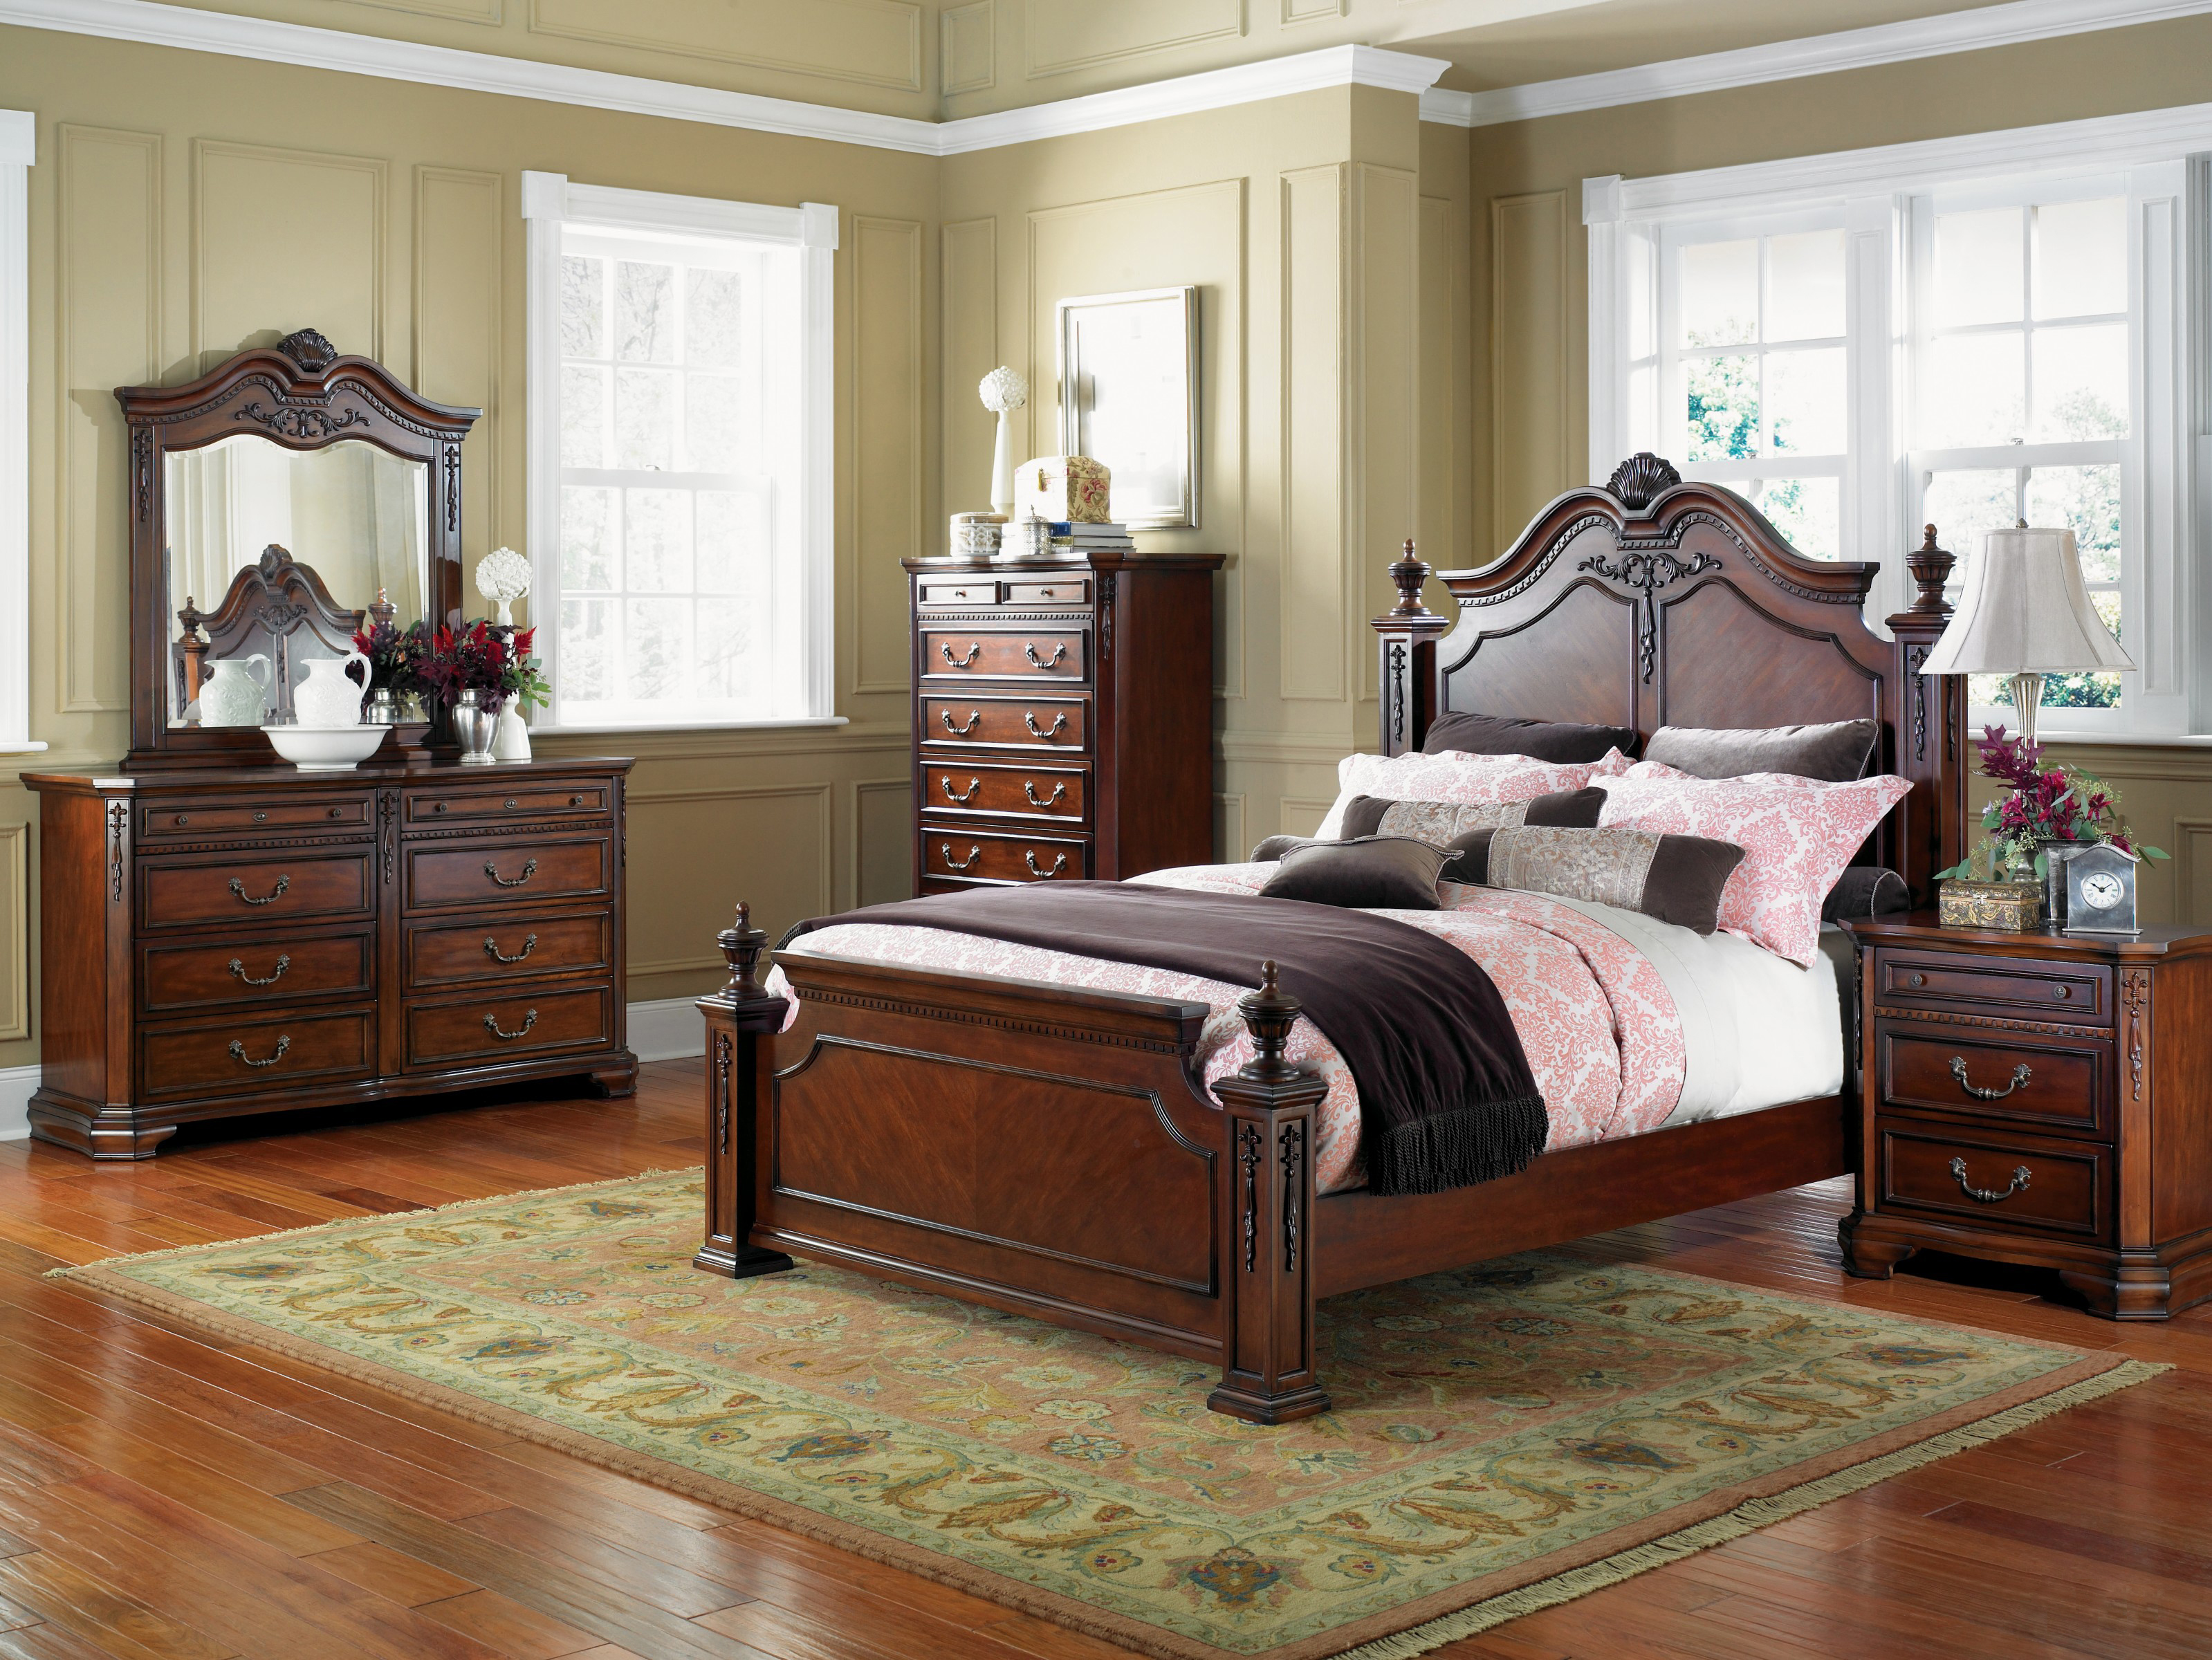 Remarkable Bedroom Furniture 3198 x 2400 · 3937 kB · jpeg